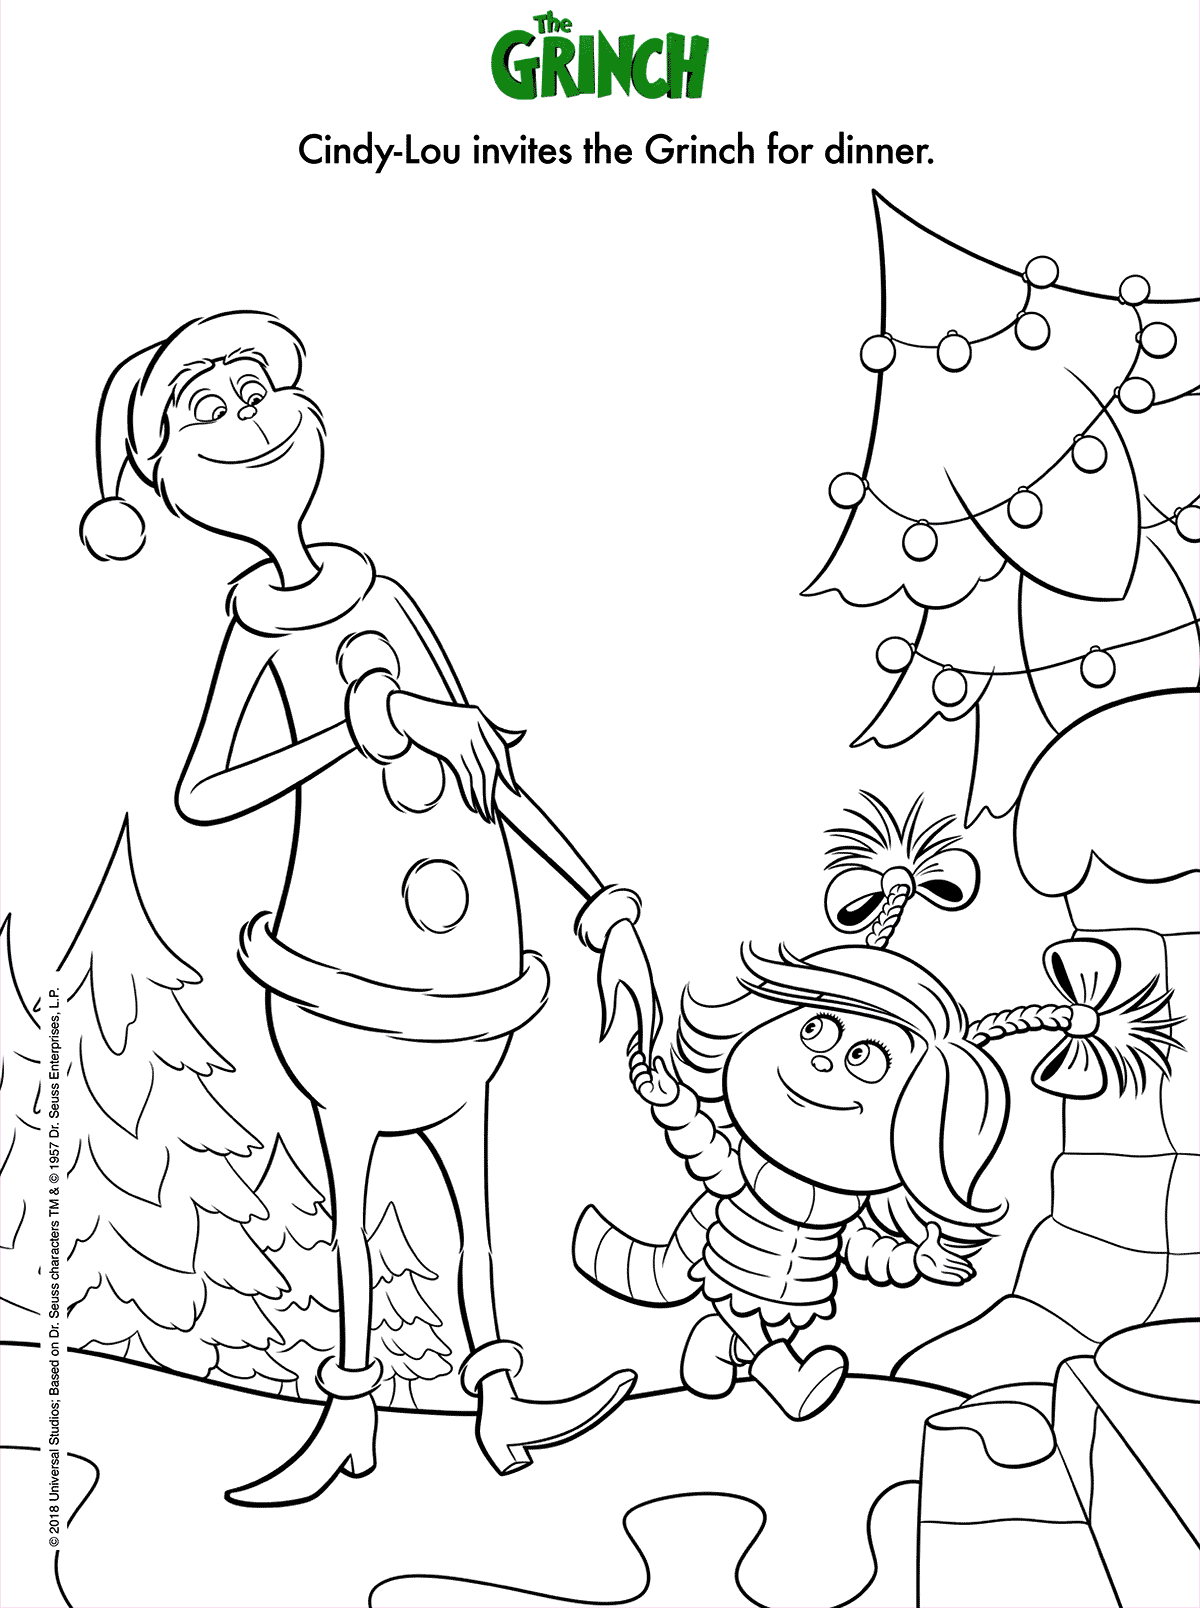 The Grinch Coloring Page. Find lots of beautiful coloring